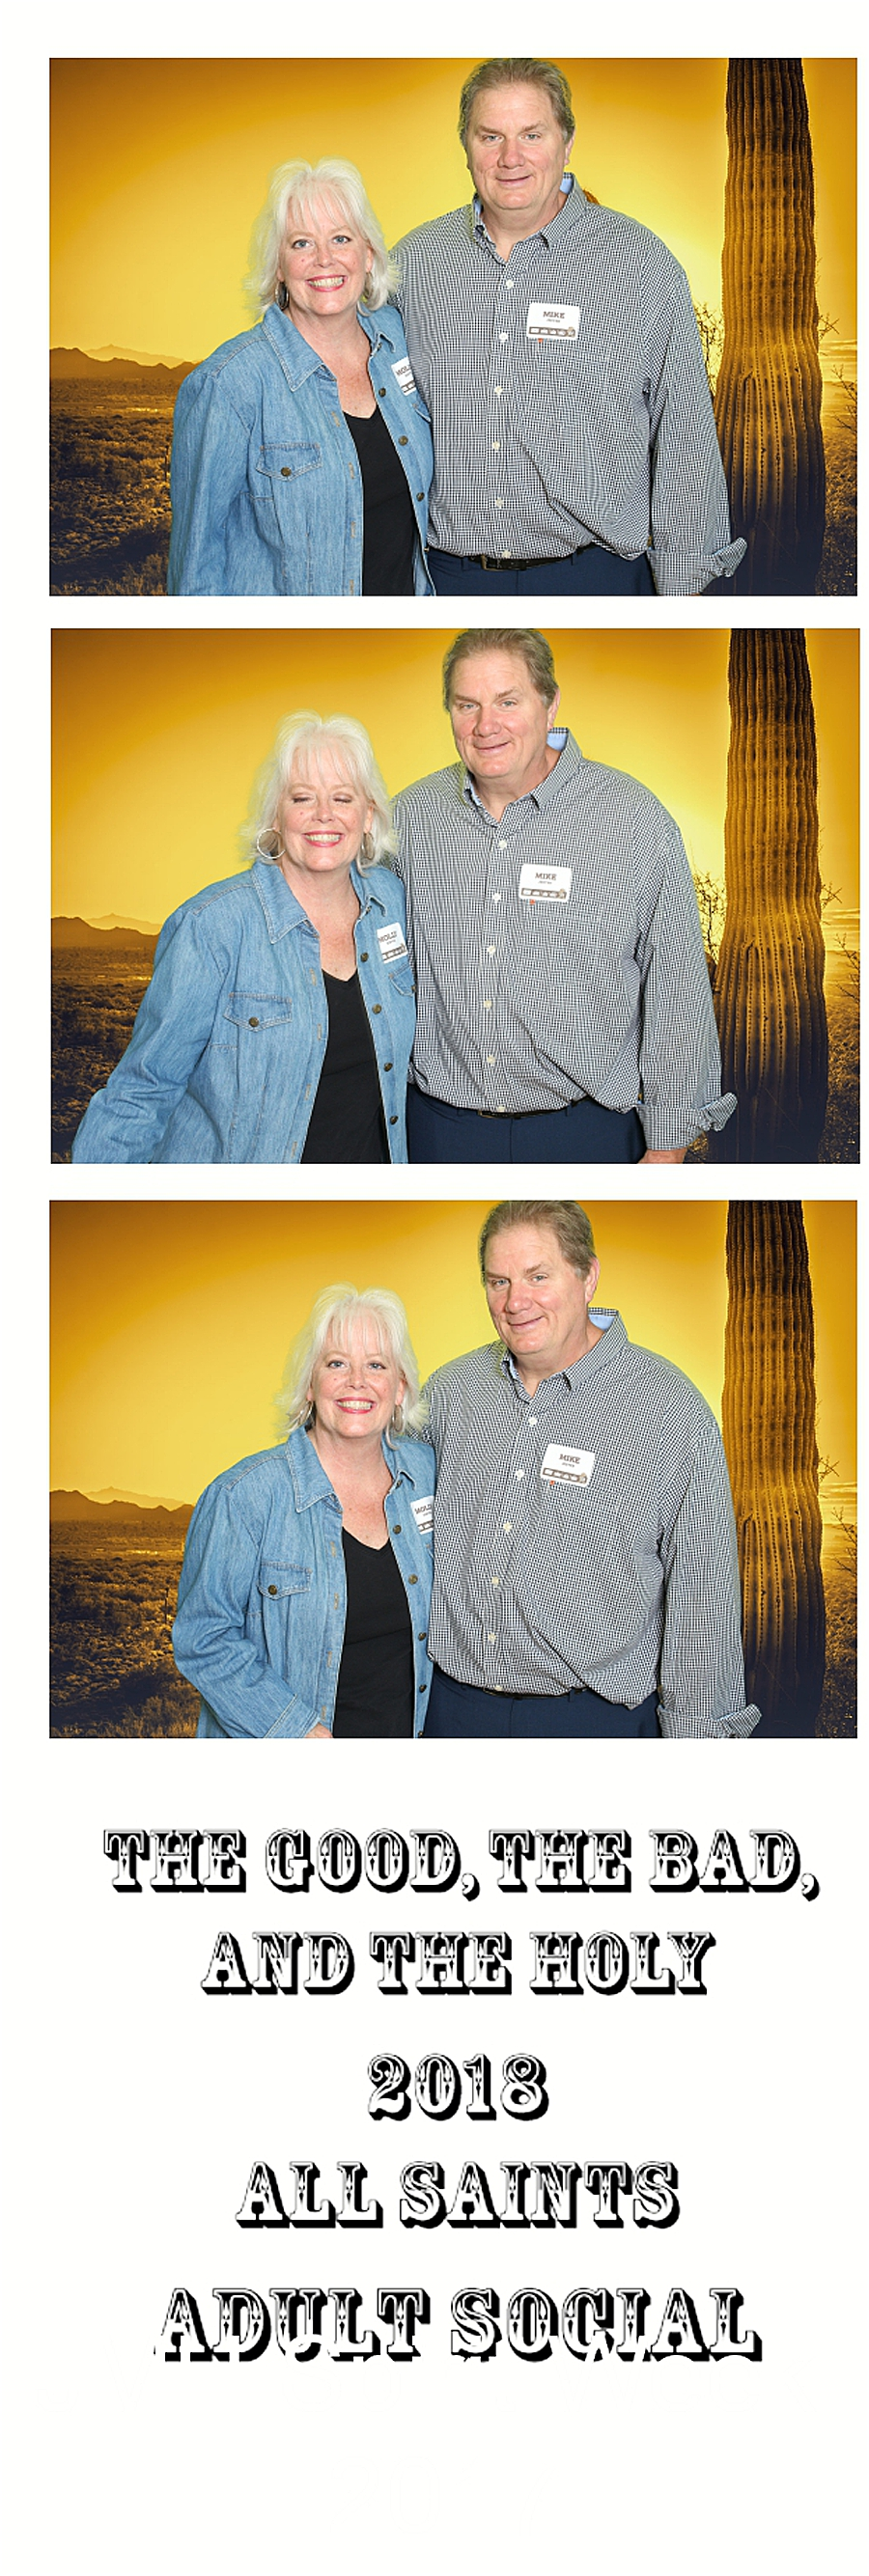 Knoxville Photo Booth_1309.jpg